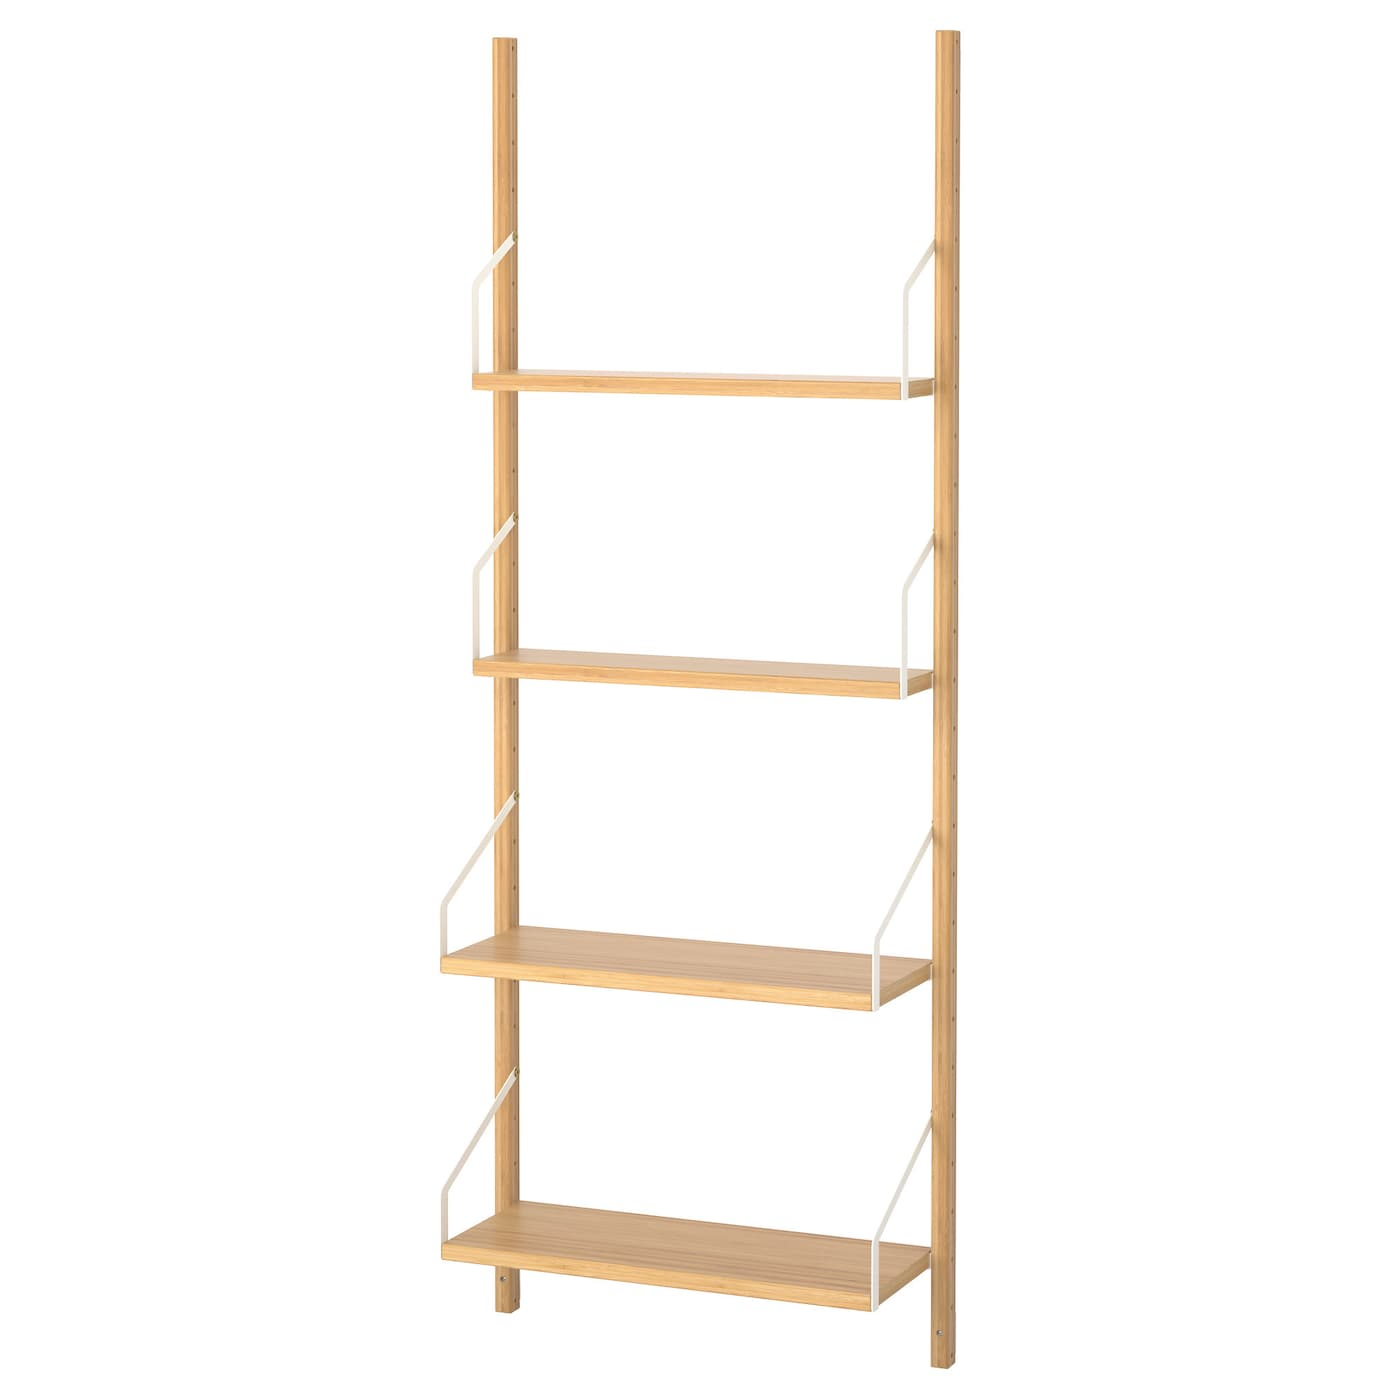 Svaln s wall mounted shelf combination bamboo 66x25x176 cm Wall mounted bookcase shelves